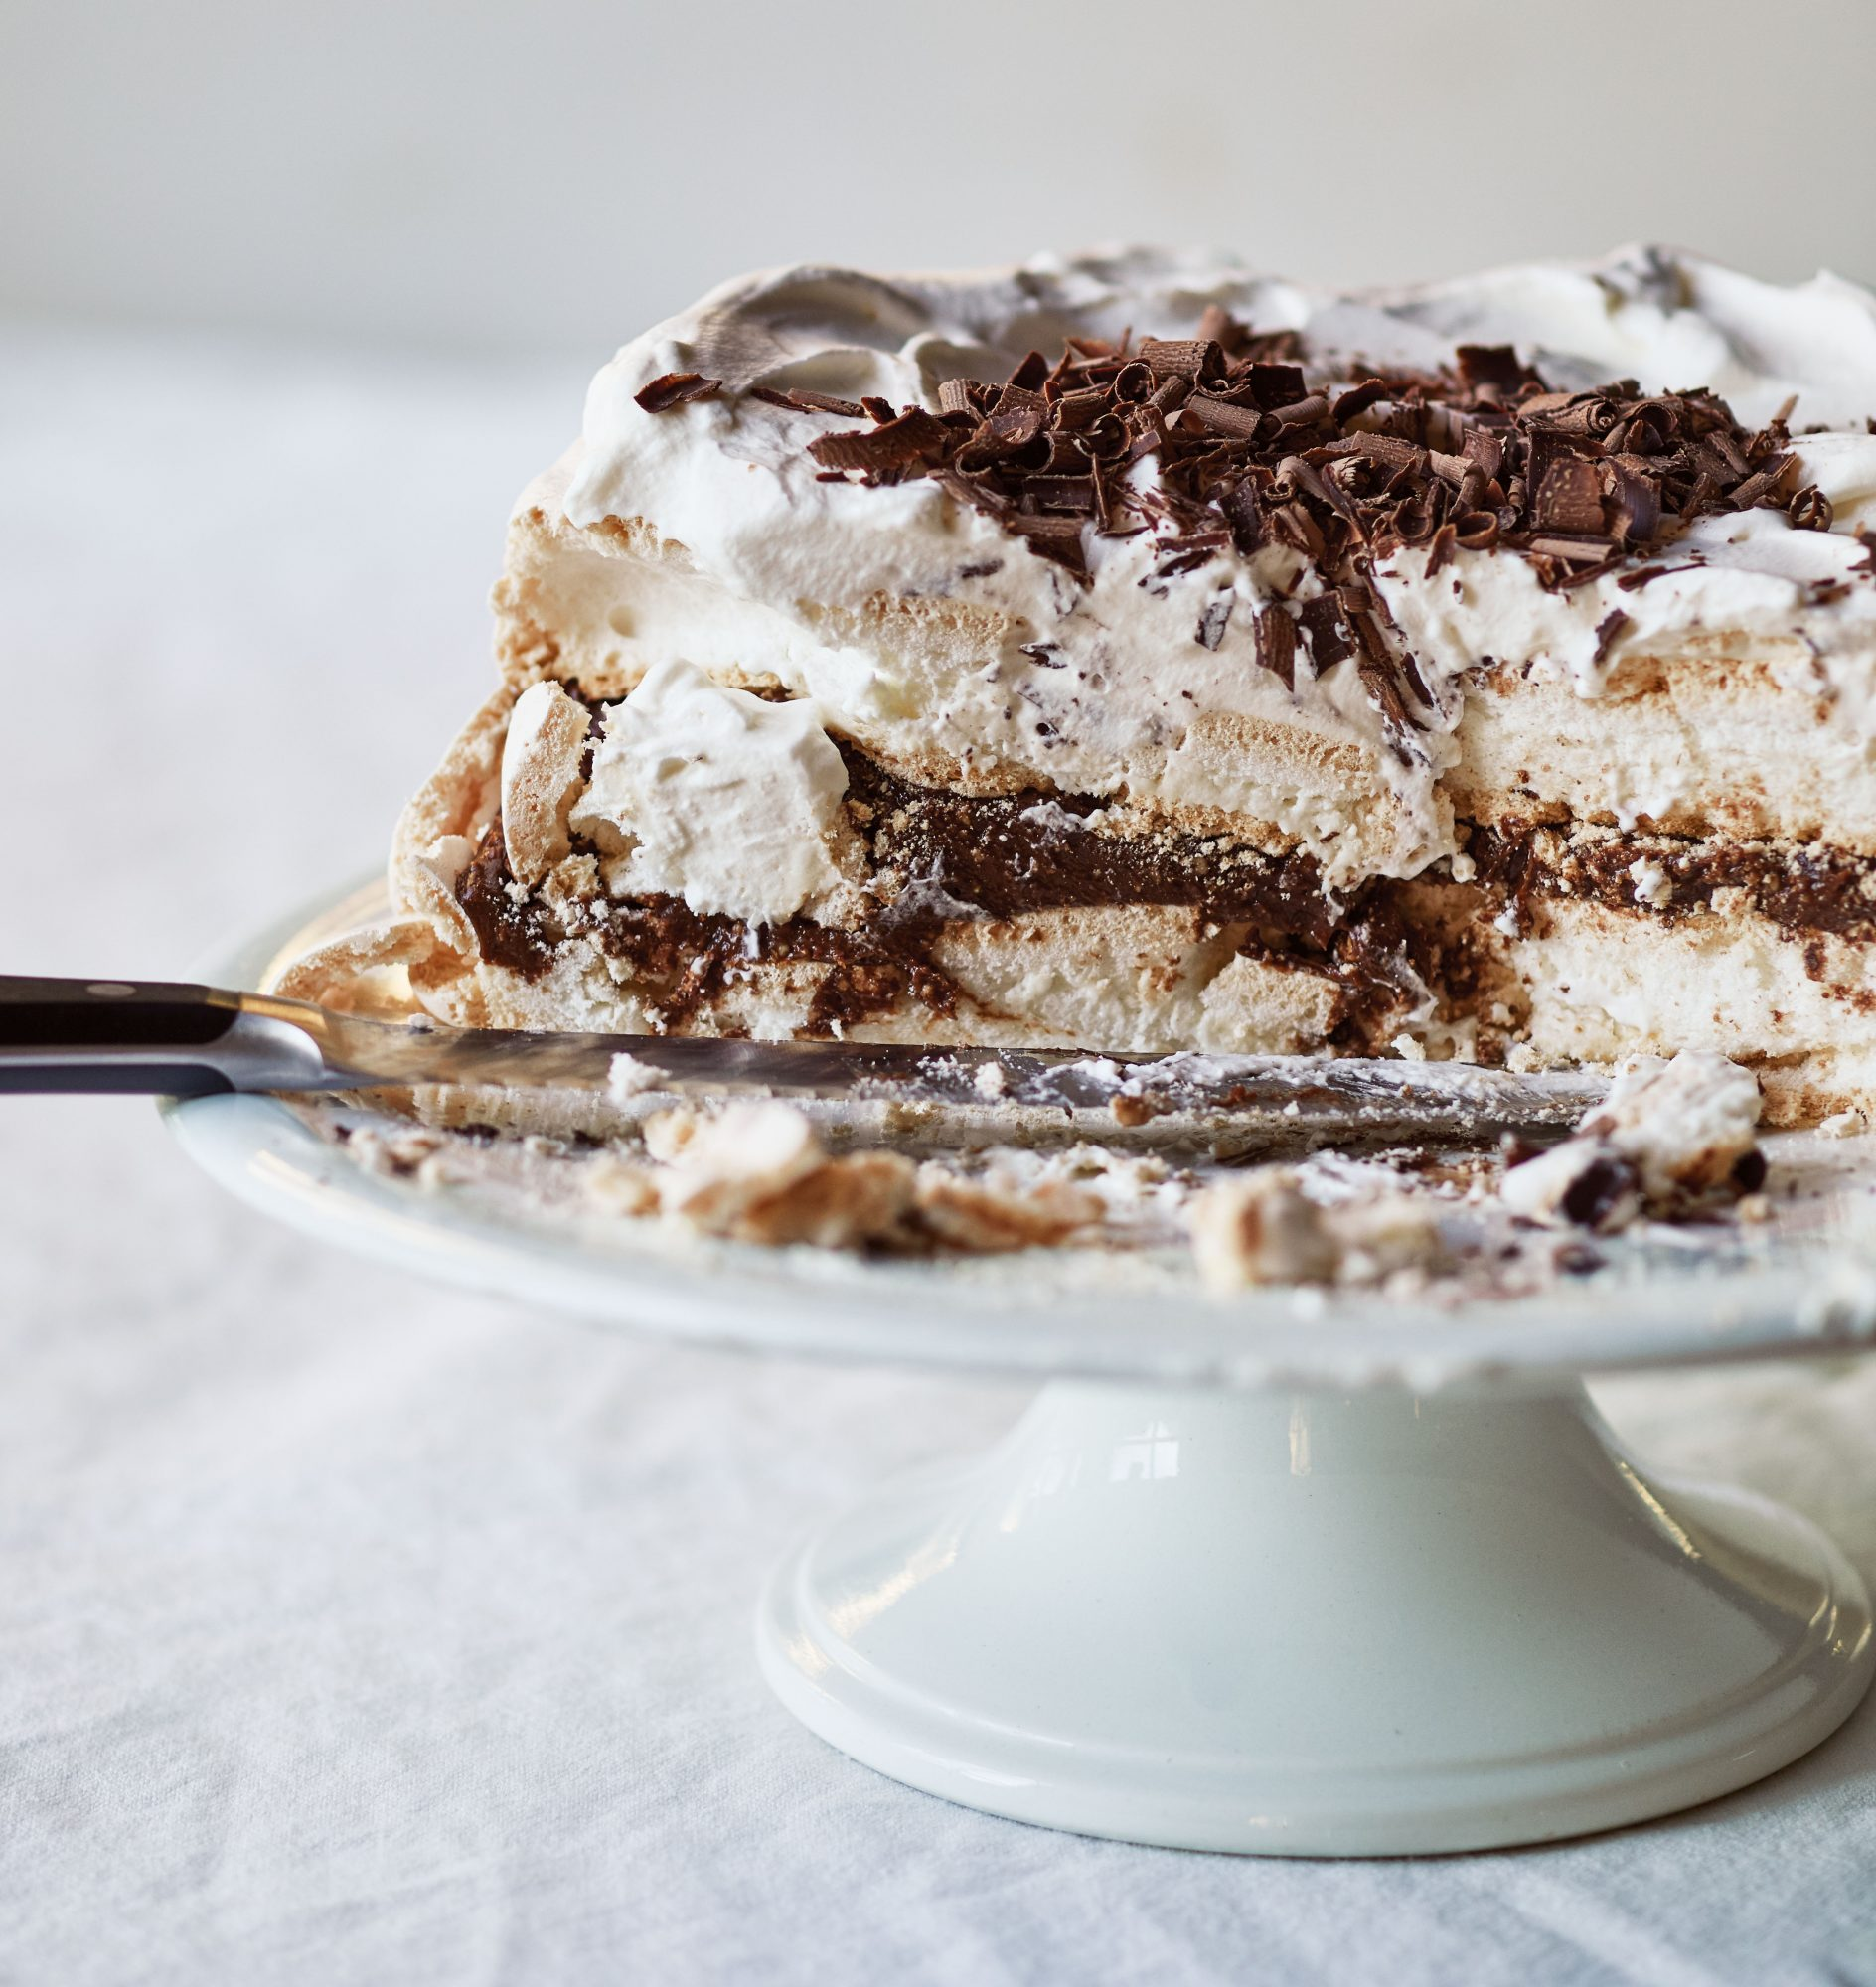 Ina Garten's Chocolate Pecan Meringue Torte Recipe